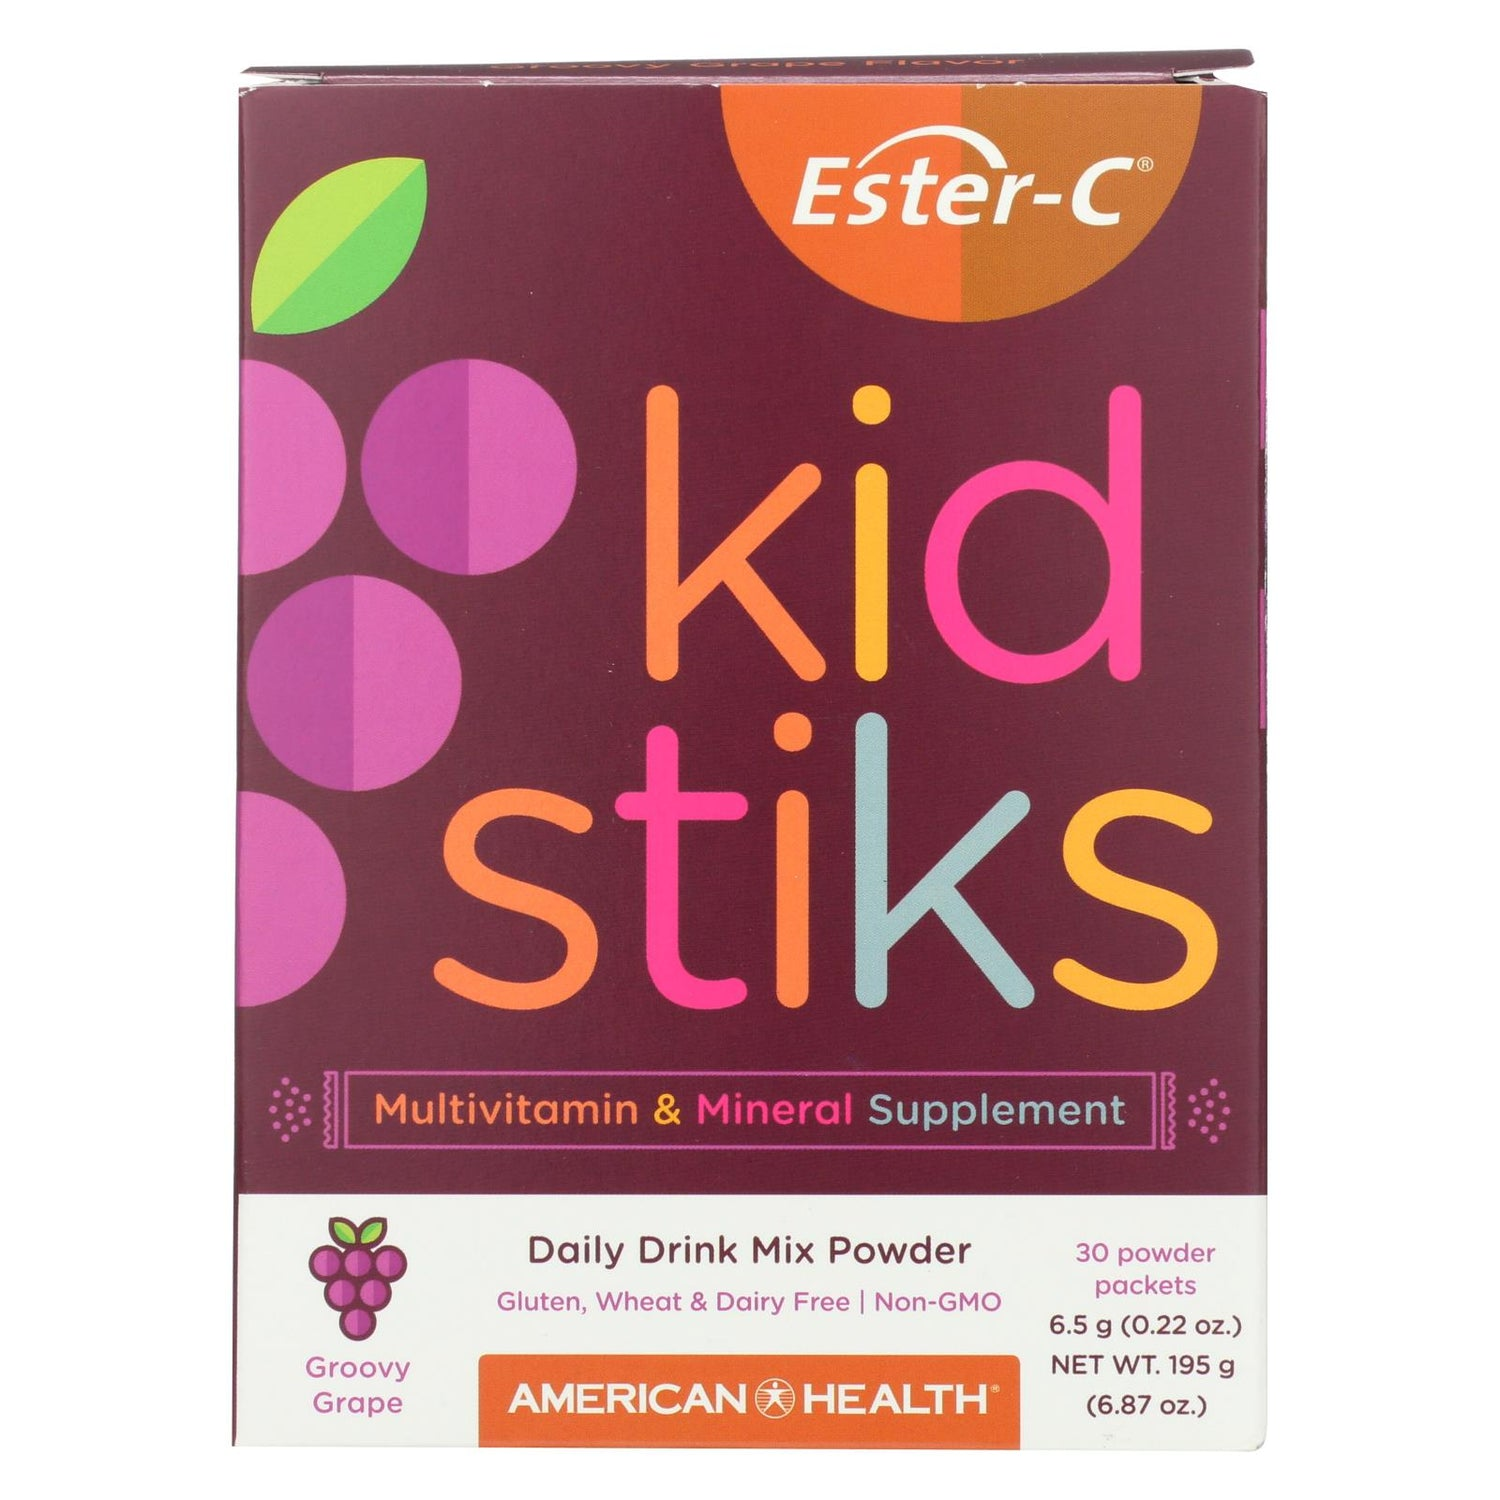 American Health Ester-c - Kid Stiks - Groovy Grape - 30 Packets